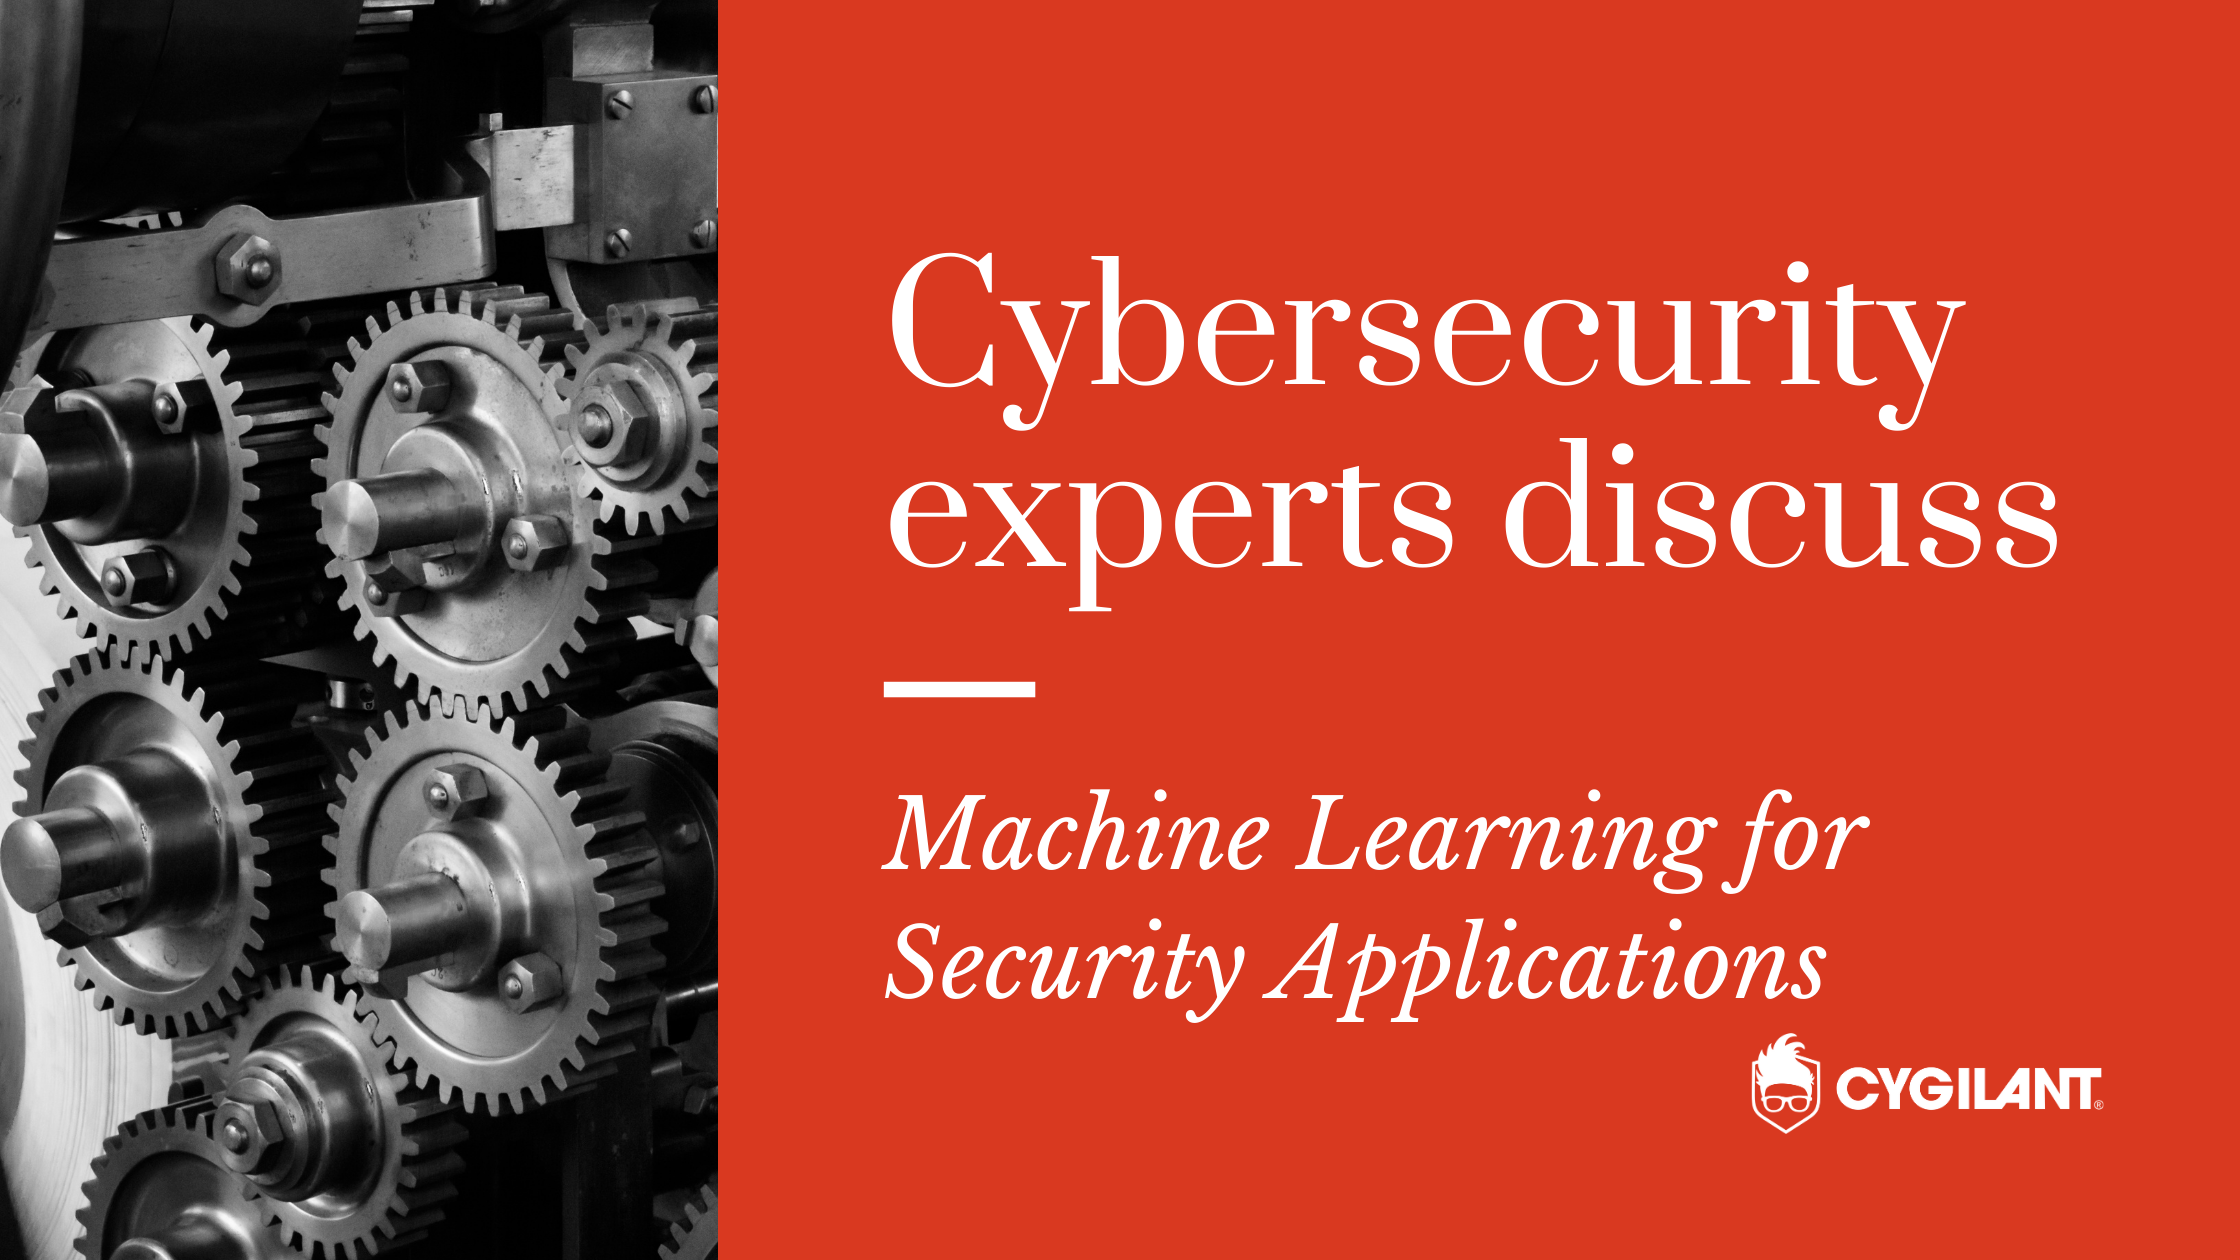 Machine Learning for Security Applications